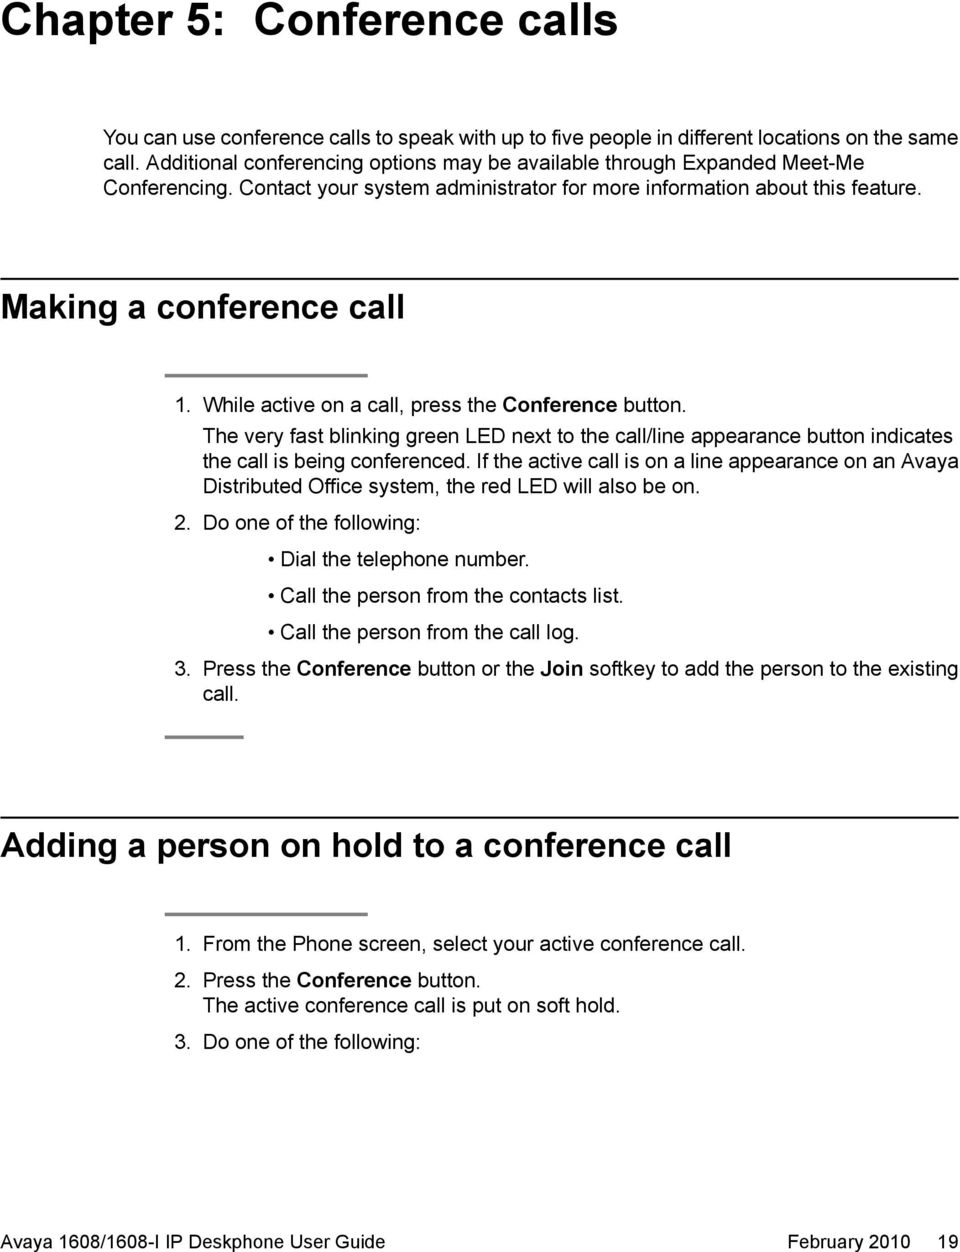 While active on a call, press the Conference button. The very fast blinking green LED next to the call/line appearance button indicates the call is being conferenced.